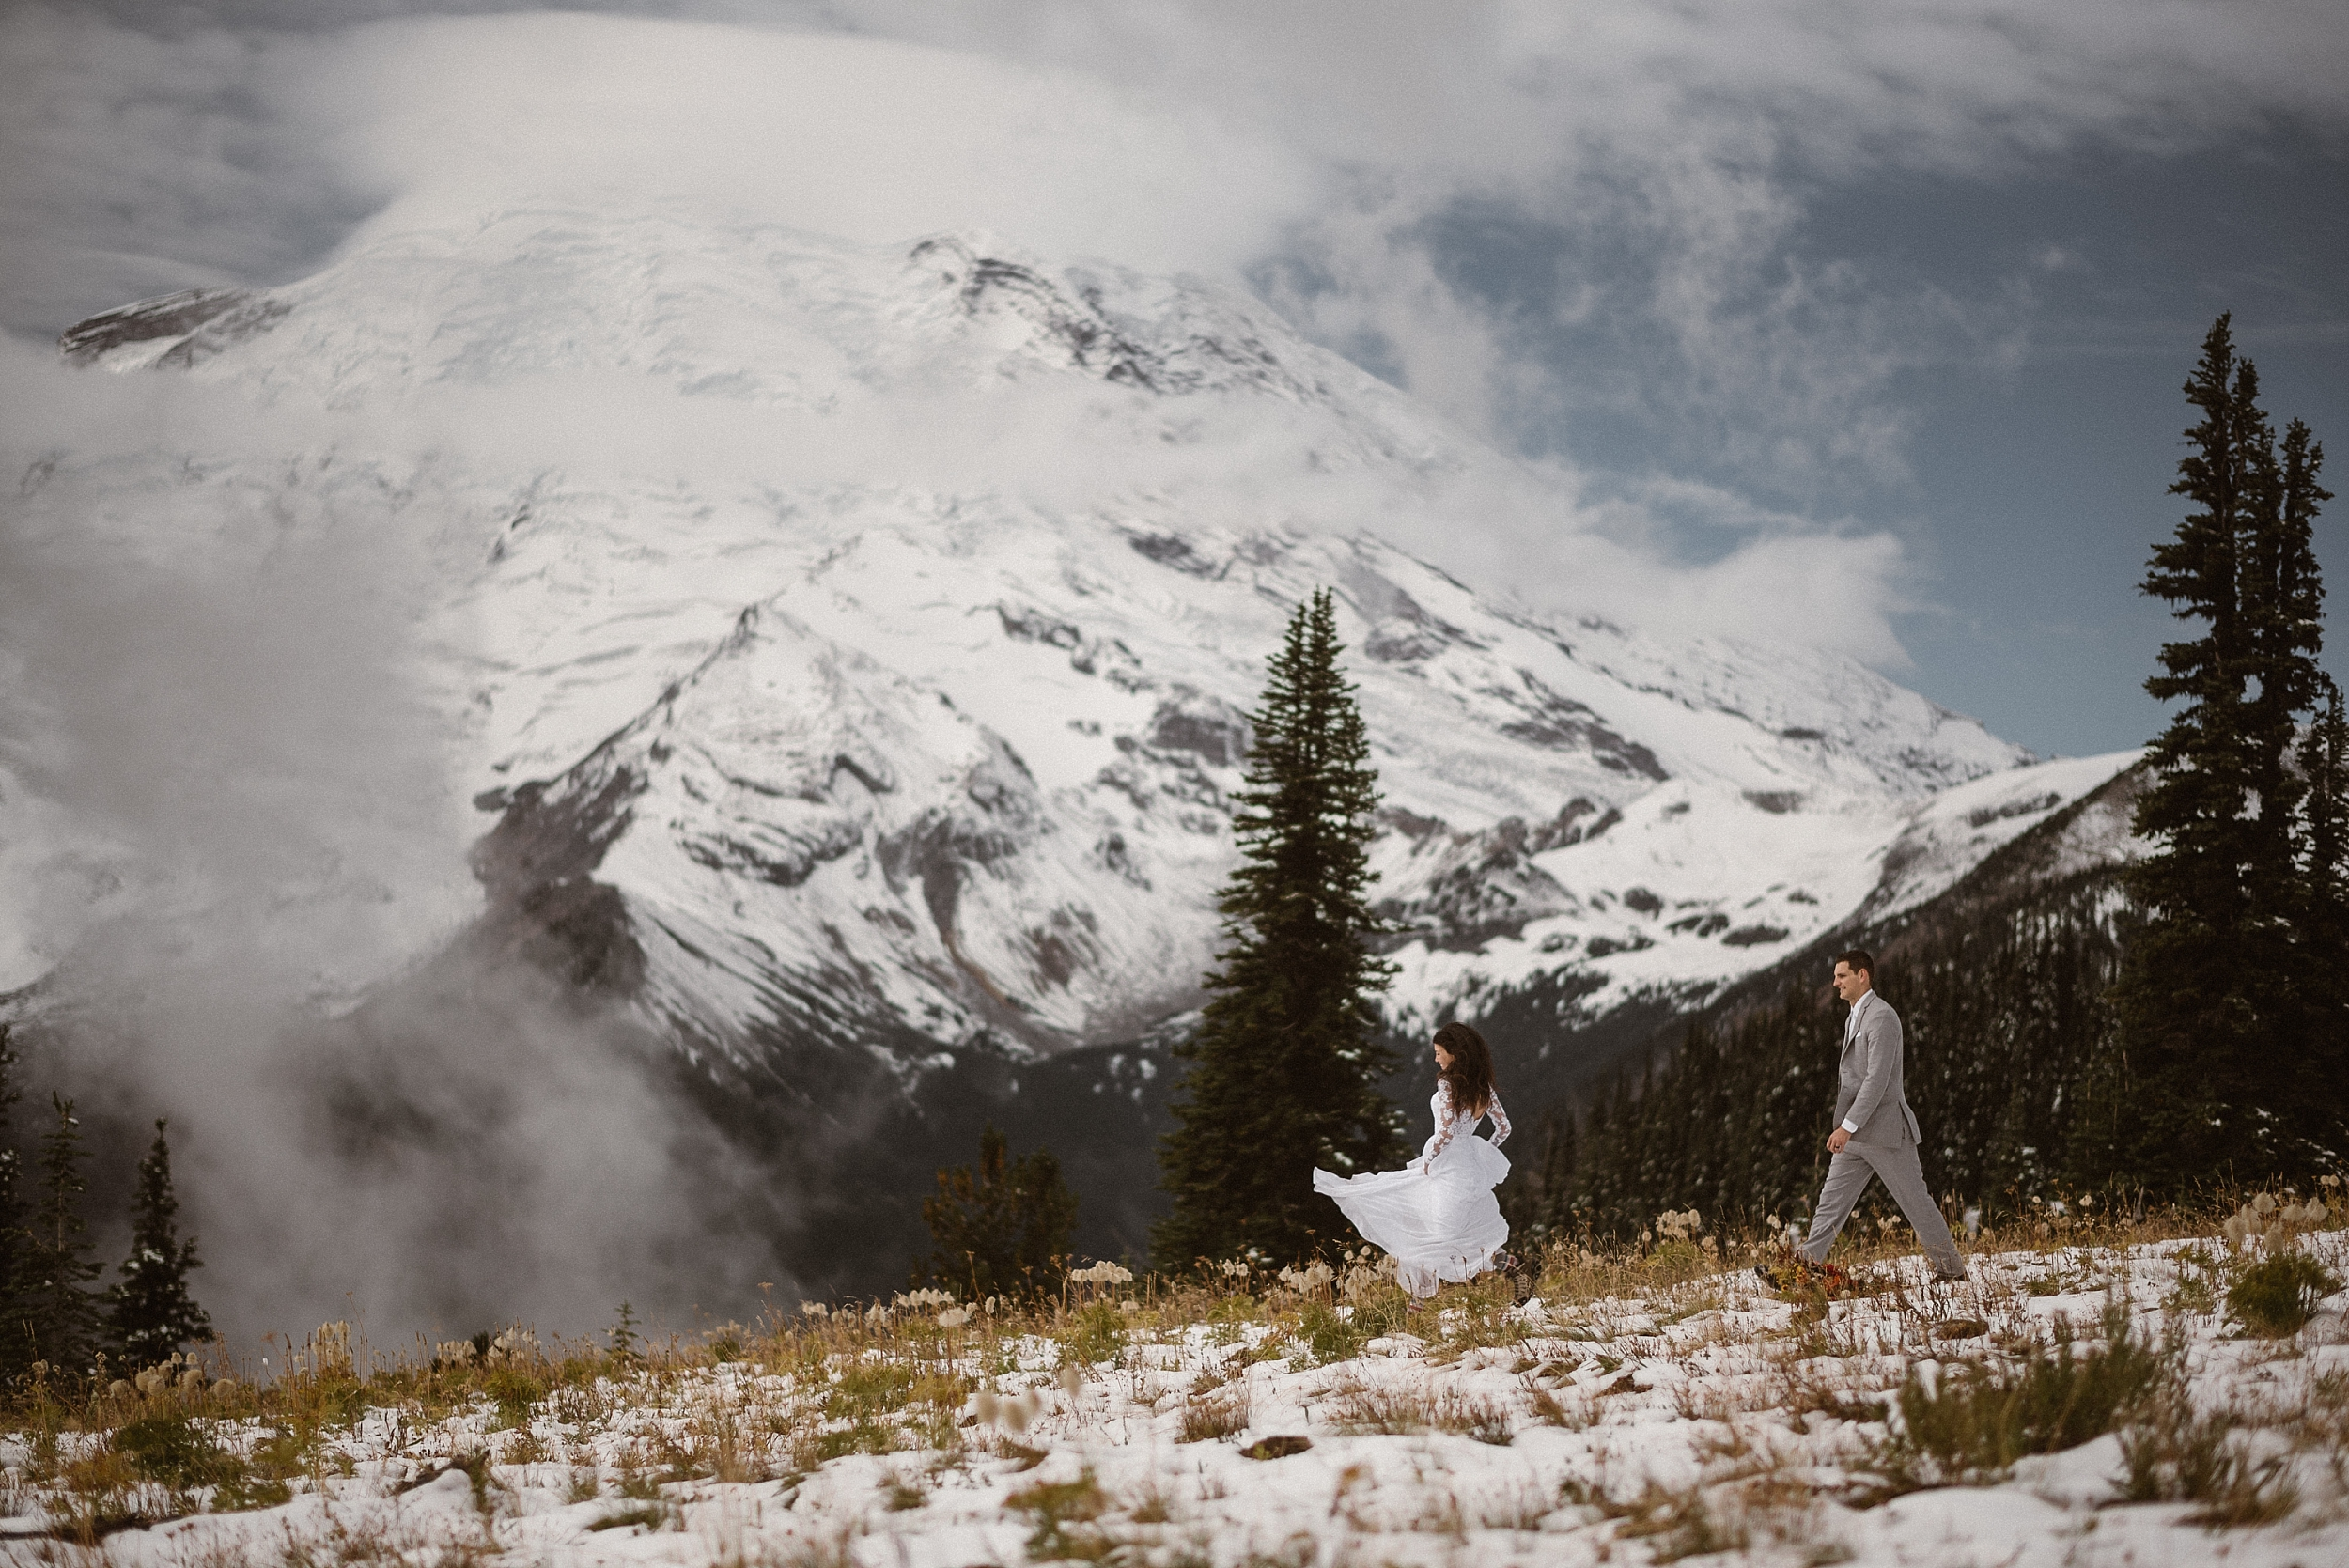 A bride and groom run through a snow-covered meadow. Tall evergreen trees poke up behind them. In the distance, a snowy, granite covered mountain looms. The groom walks behind his bride, who is running and holding up the skirt of her wedding dress. These elopement photos were captured by Adventure Instead, a Washington elopement photographer.